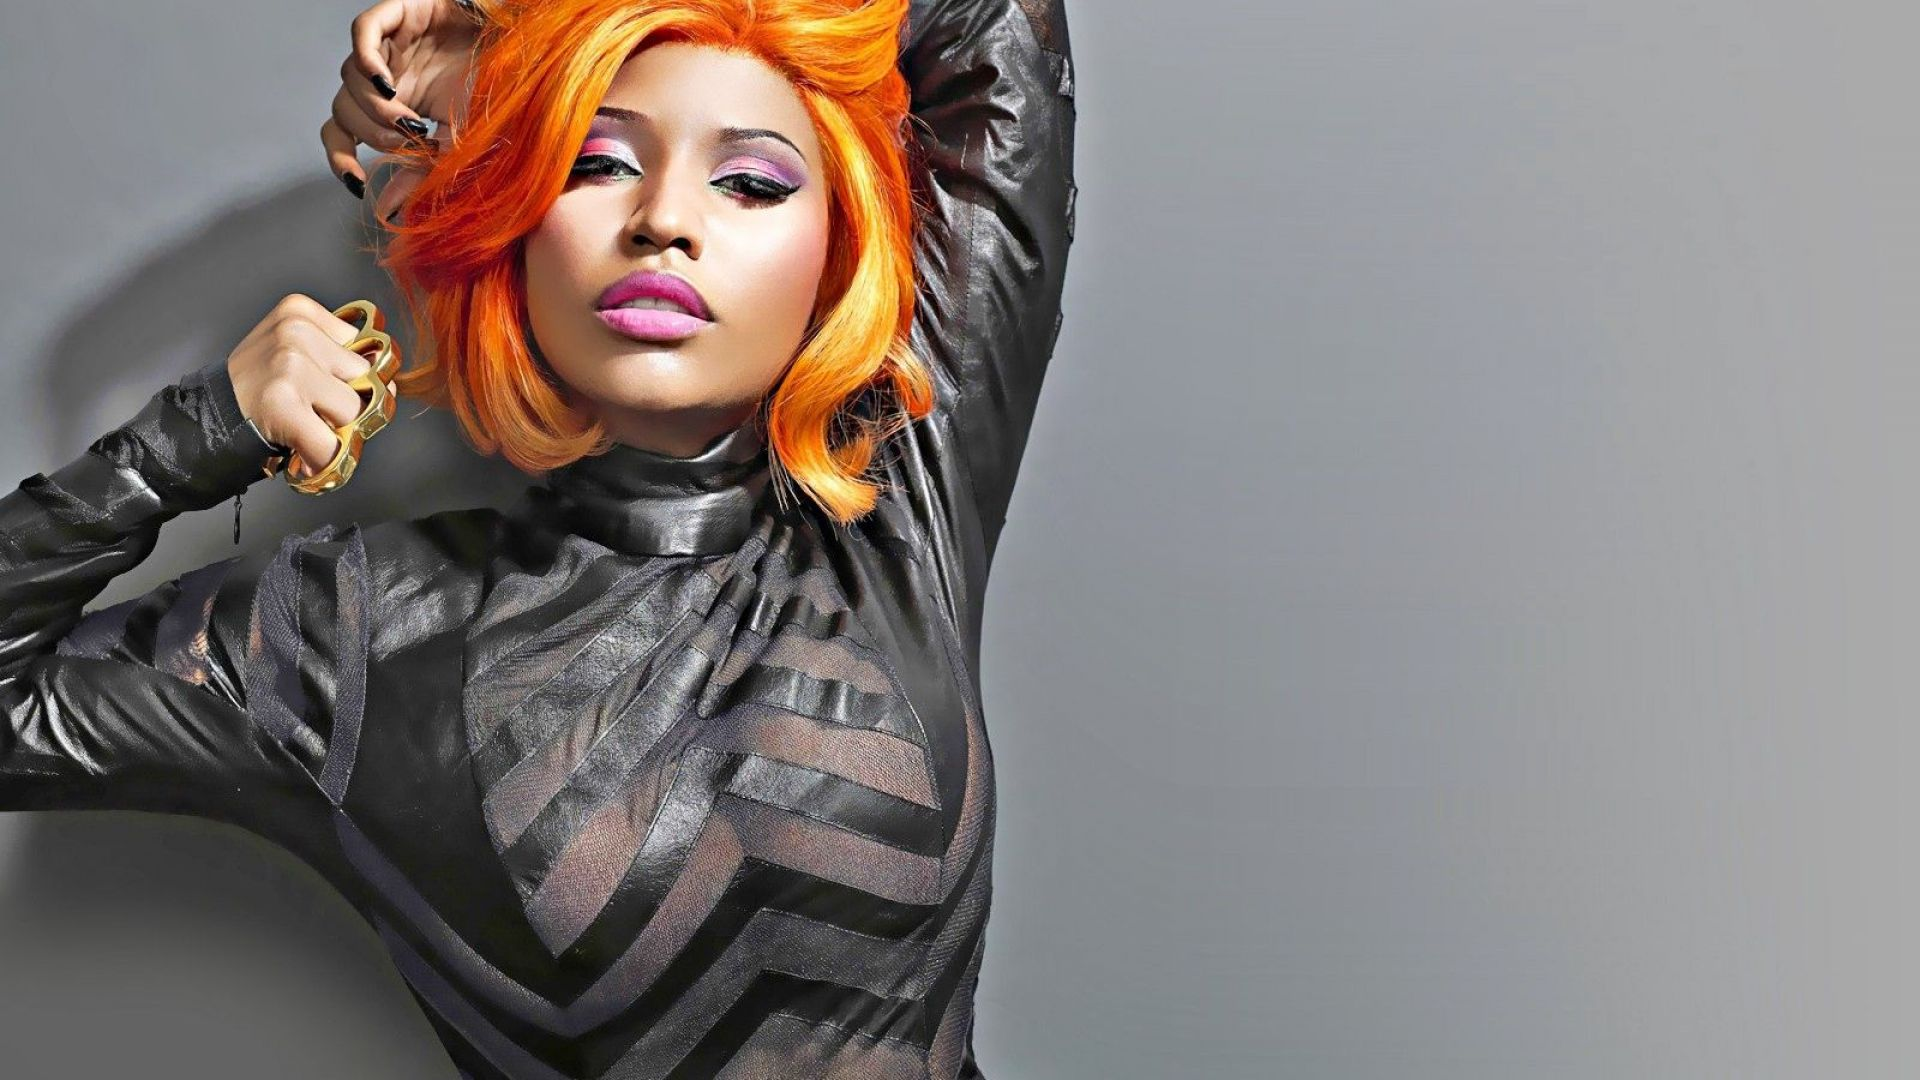 Nicki Minaj HD Wallpapers WallpapersCharlie 1920x1080